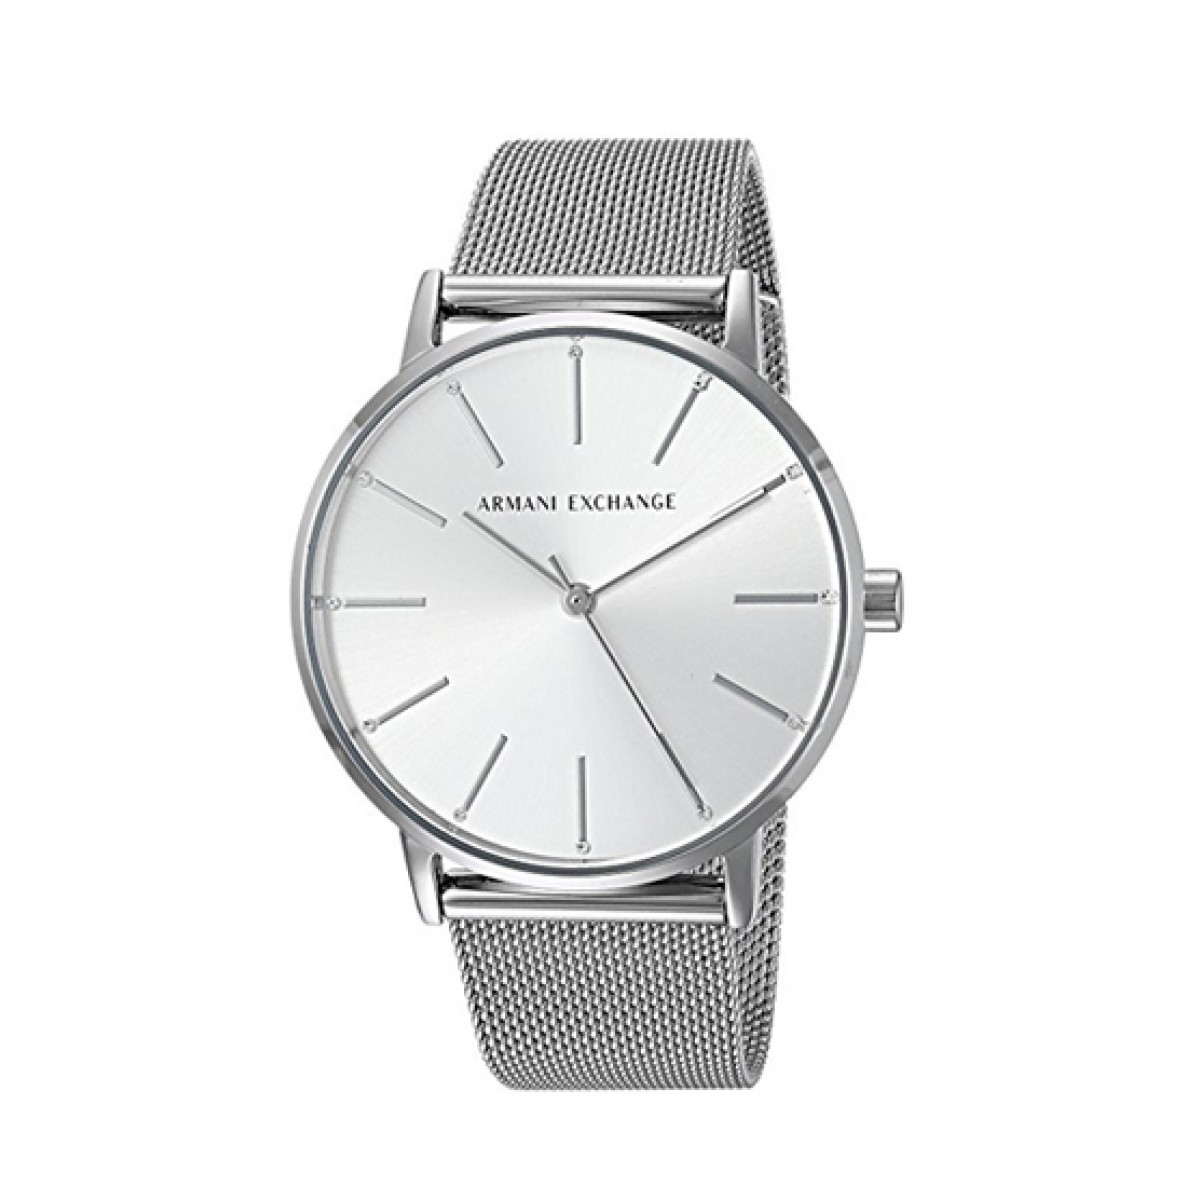 Armani Exchange Women s Watch Price in Pakistan  5060ad40b5